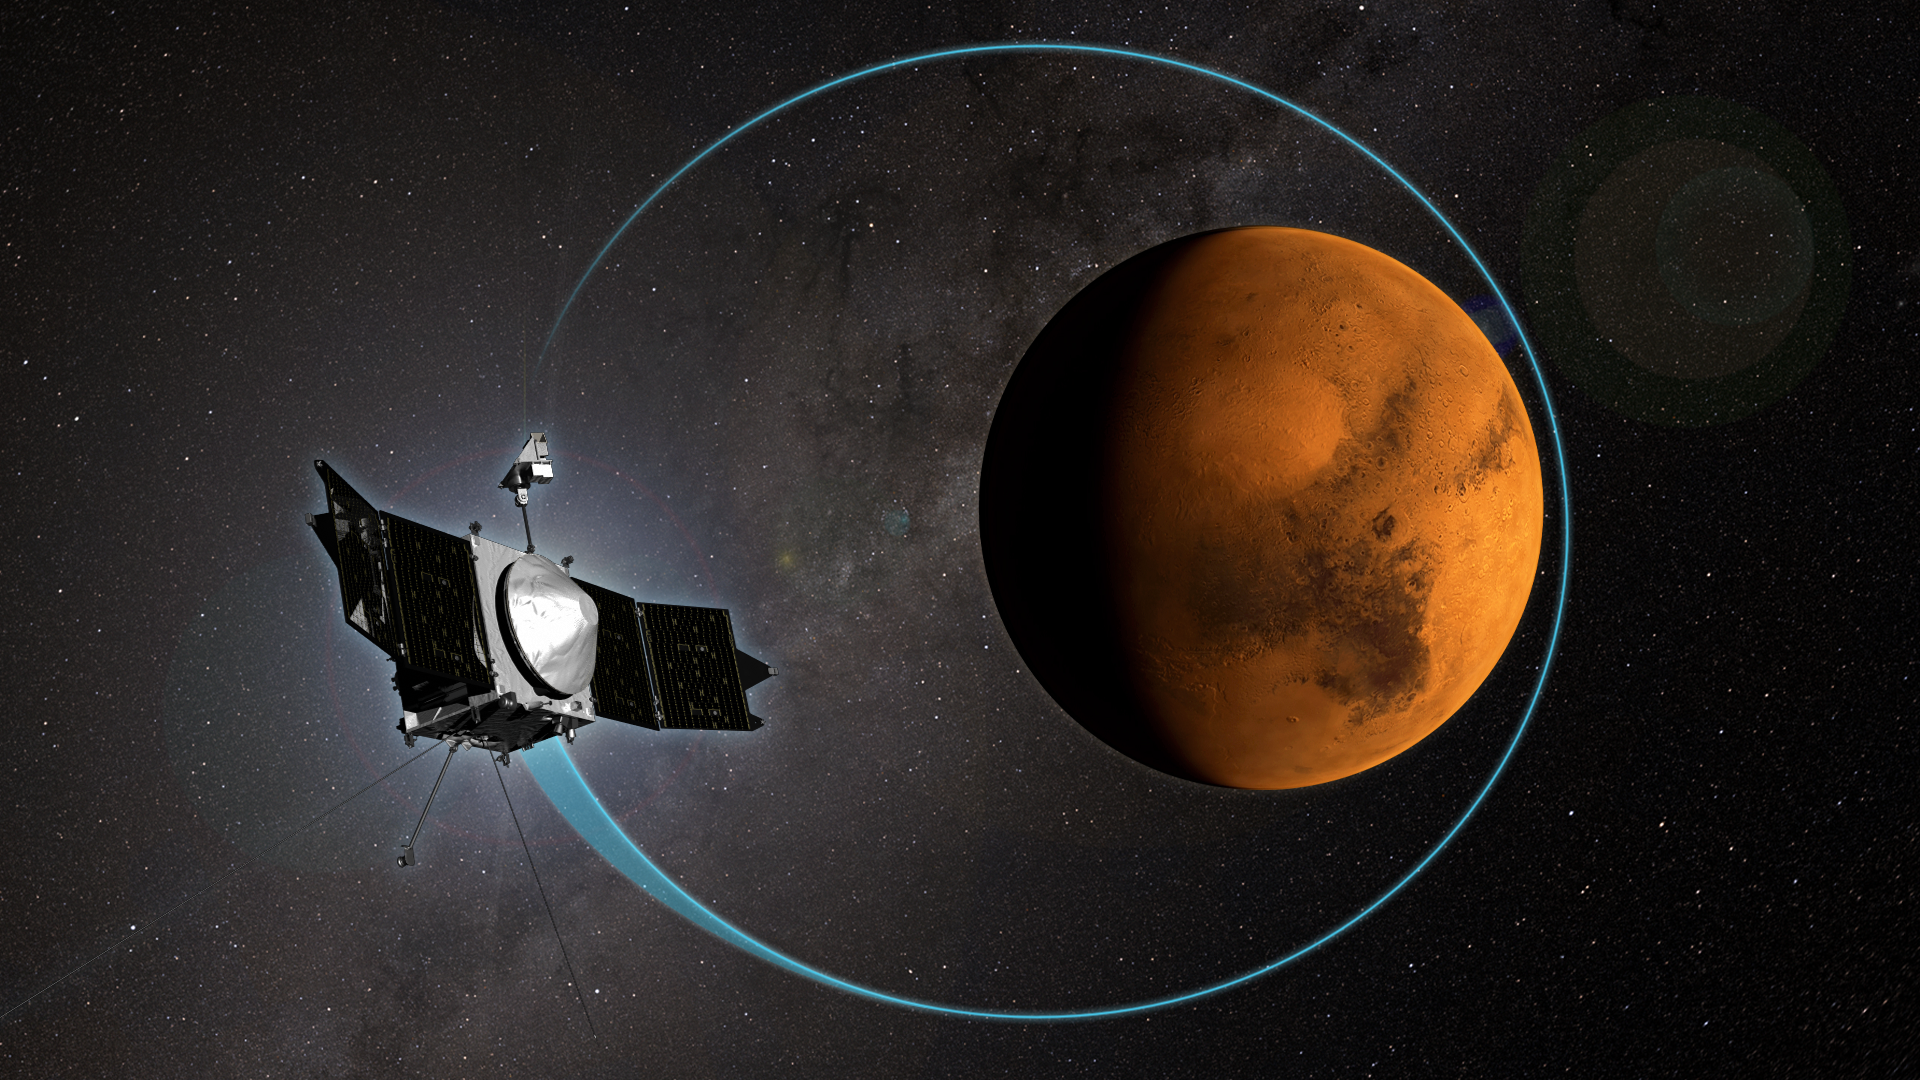 MAVEN Completes 1,000 Orbits Around Mars | NASA